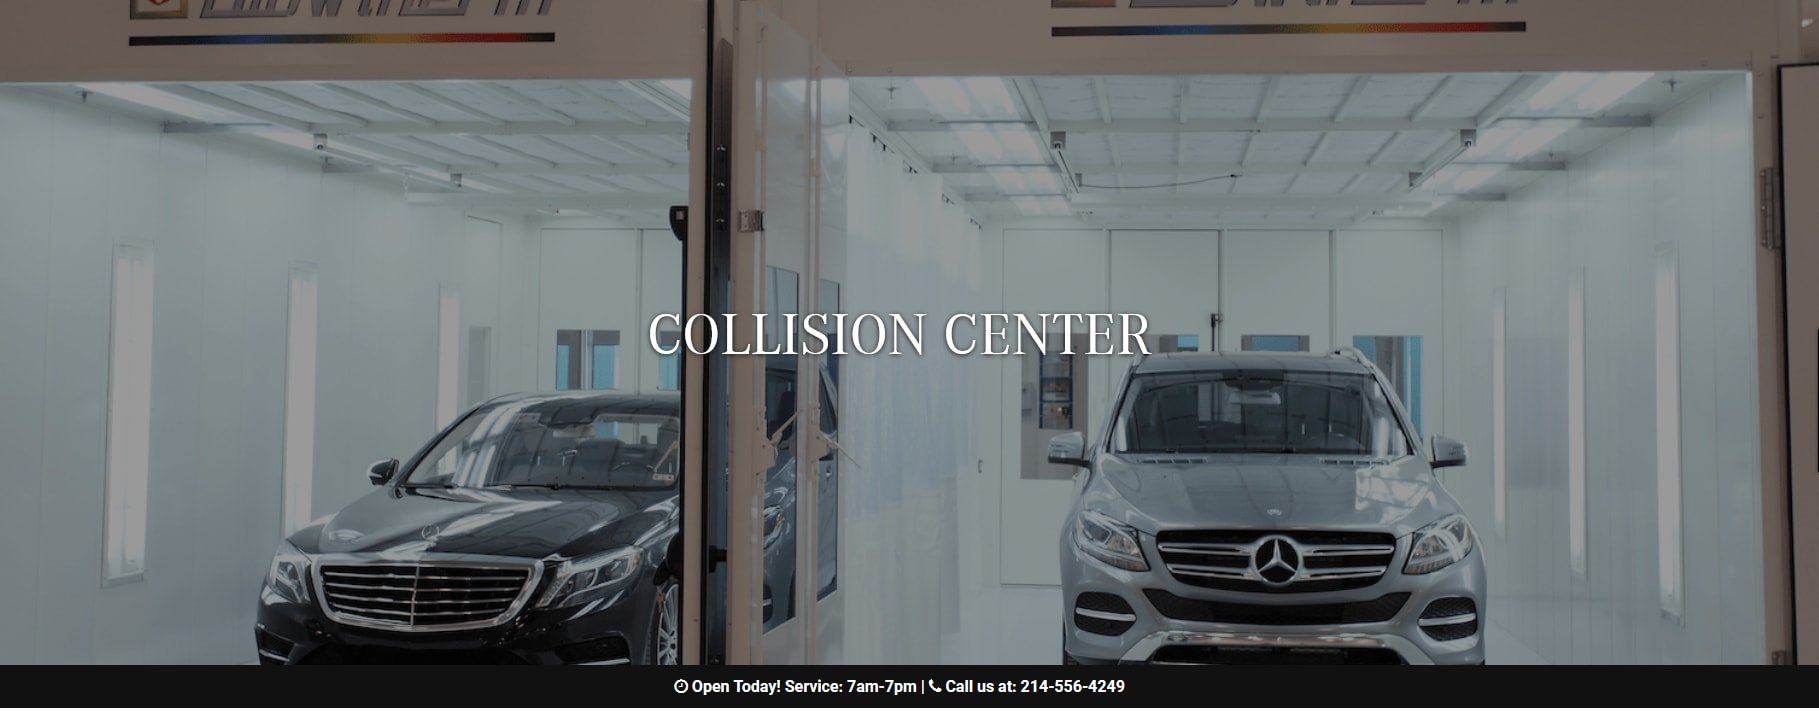 Mercedes Benz Of Plano Auto Body Plano Texas Collision Repair